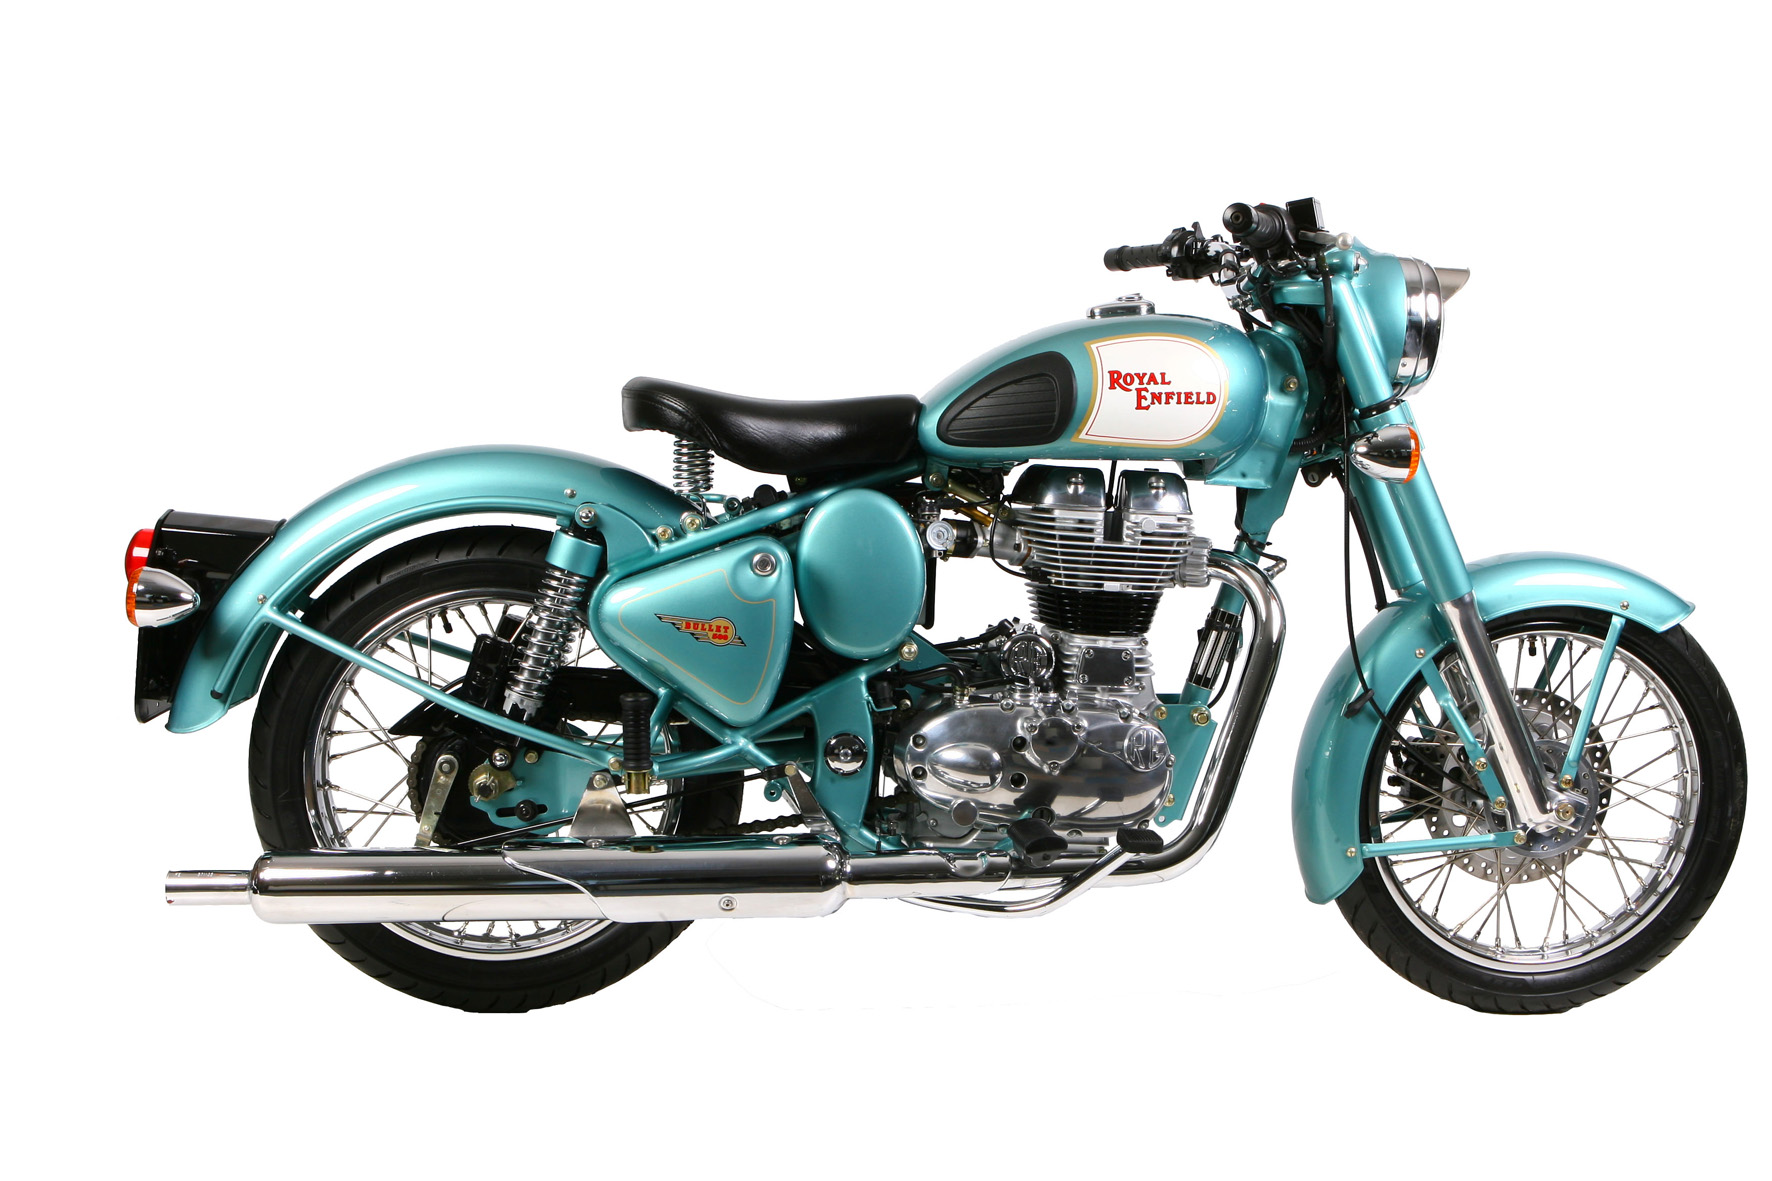 Royal enfield 350 photo - 1